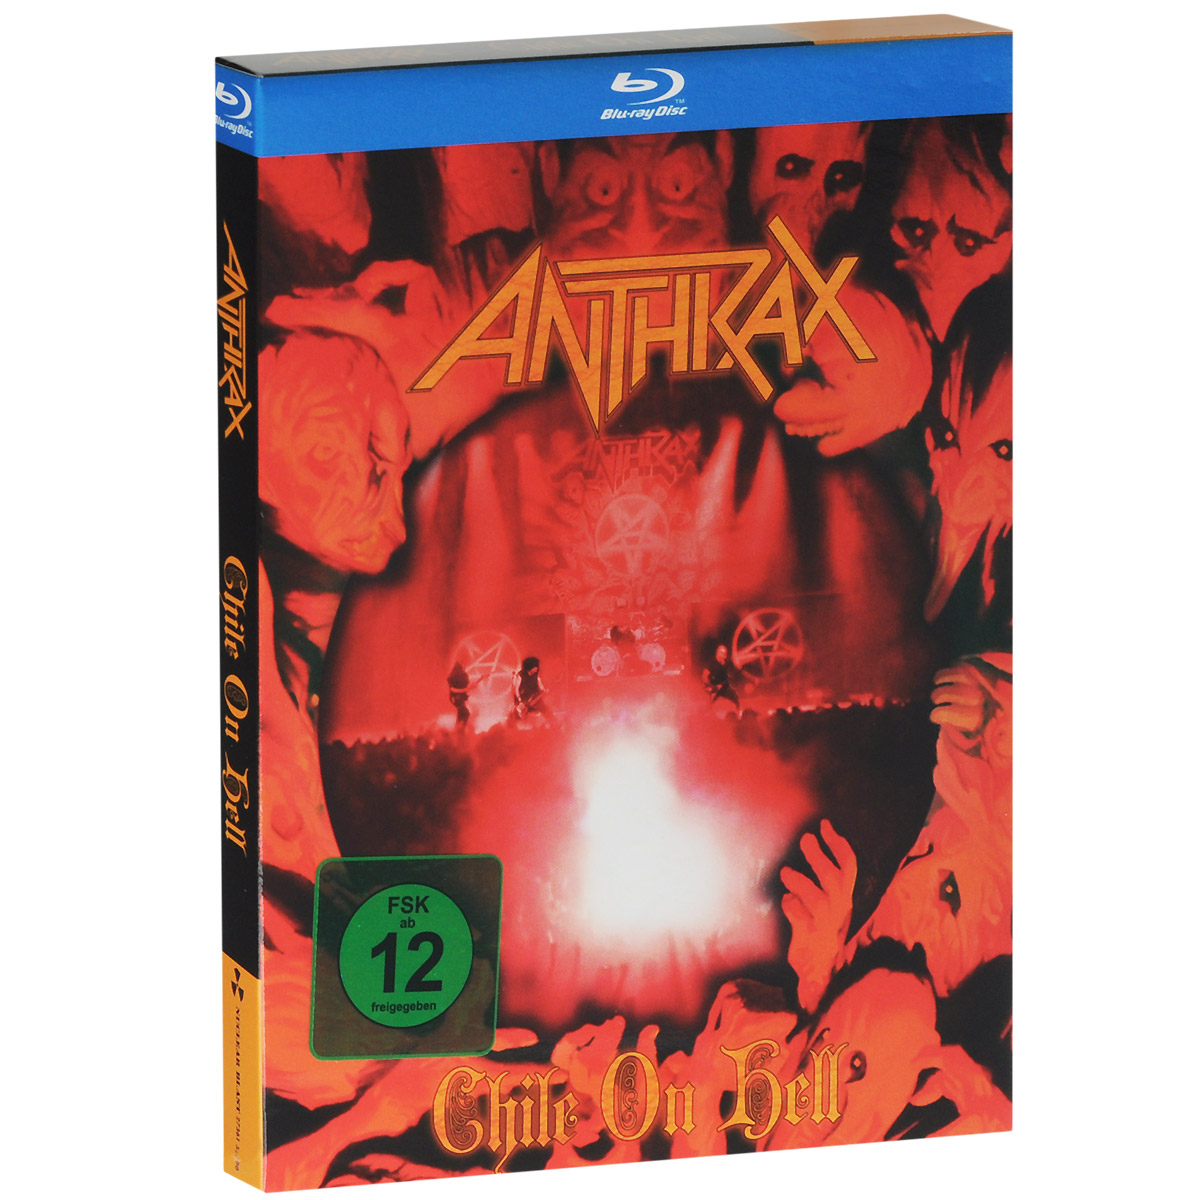 Anthrax. Chile on hell (Blu-ray + 2 CD)  the beatles 1 2 blu ray cd